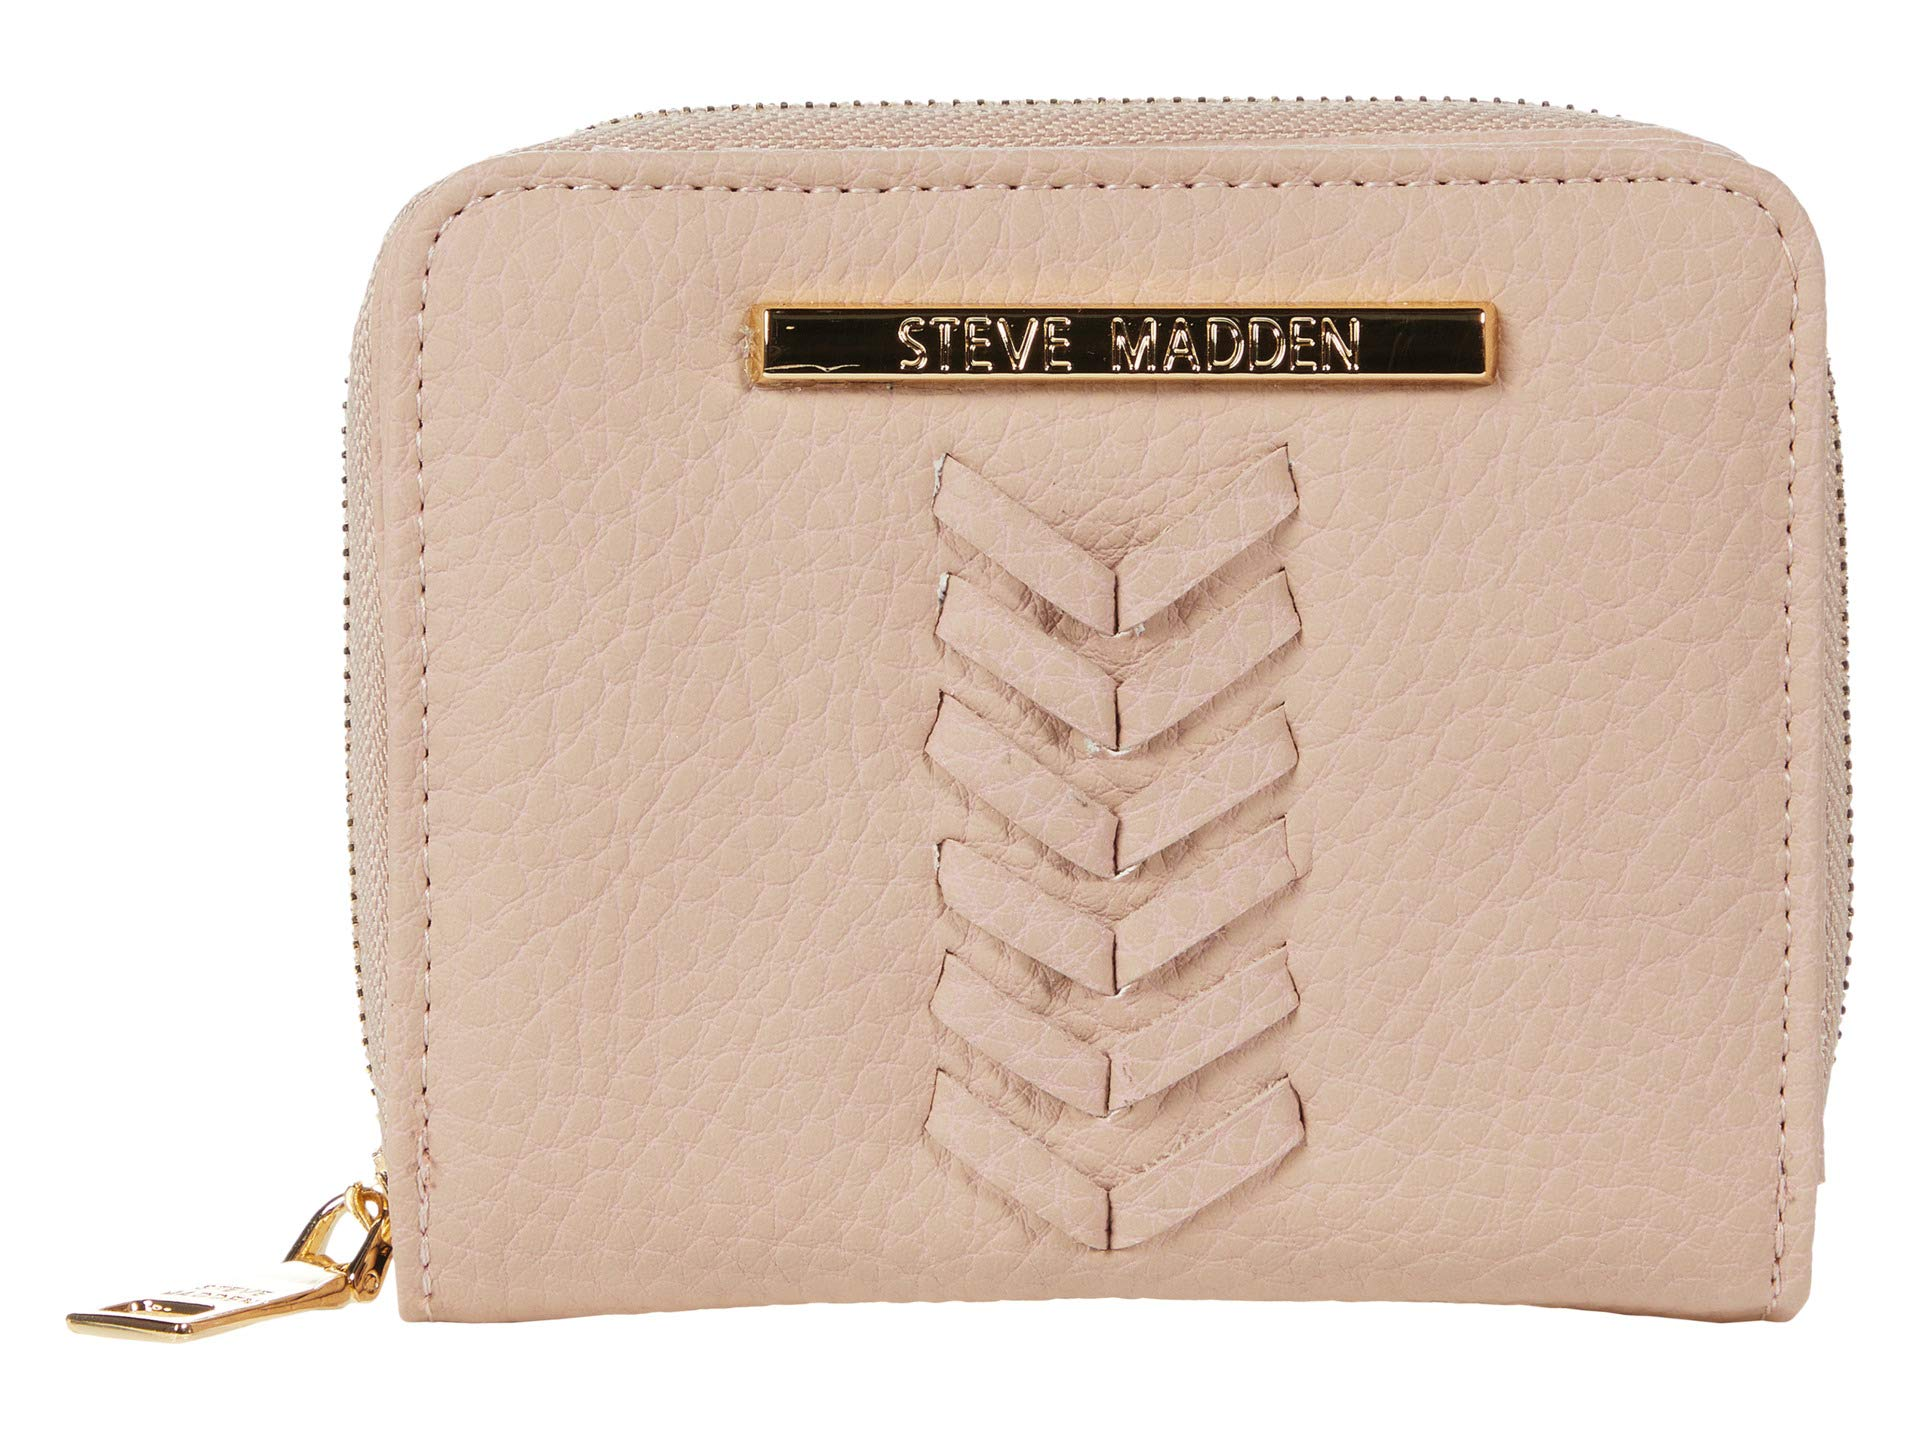 Steve Madden Steve Madden French Zip Around Wallet